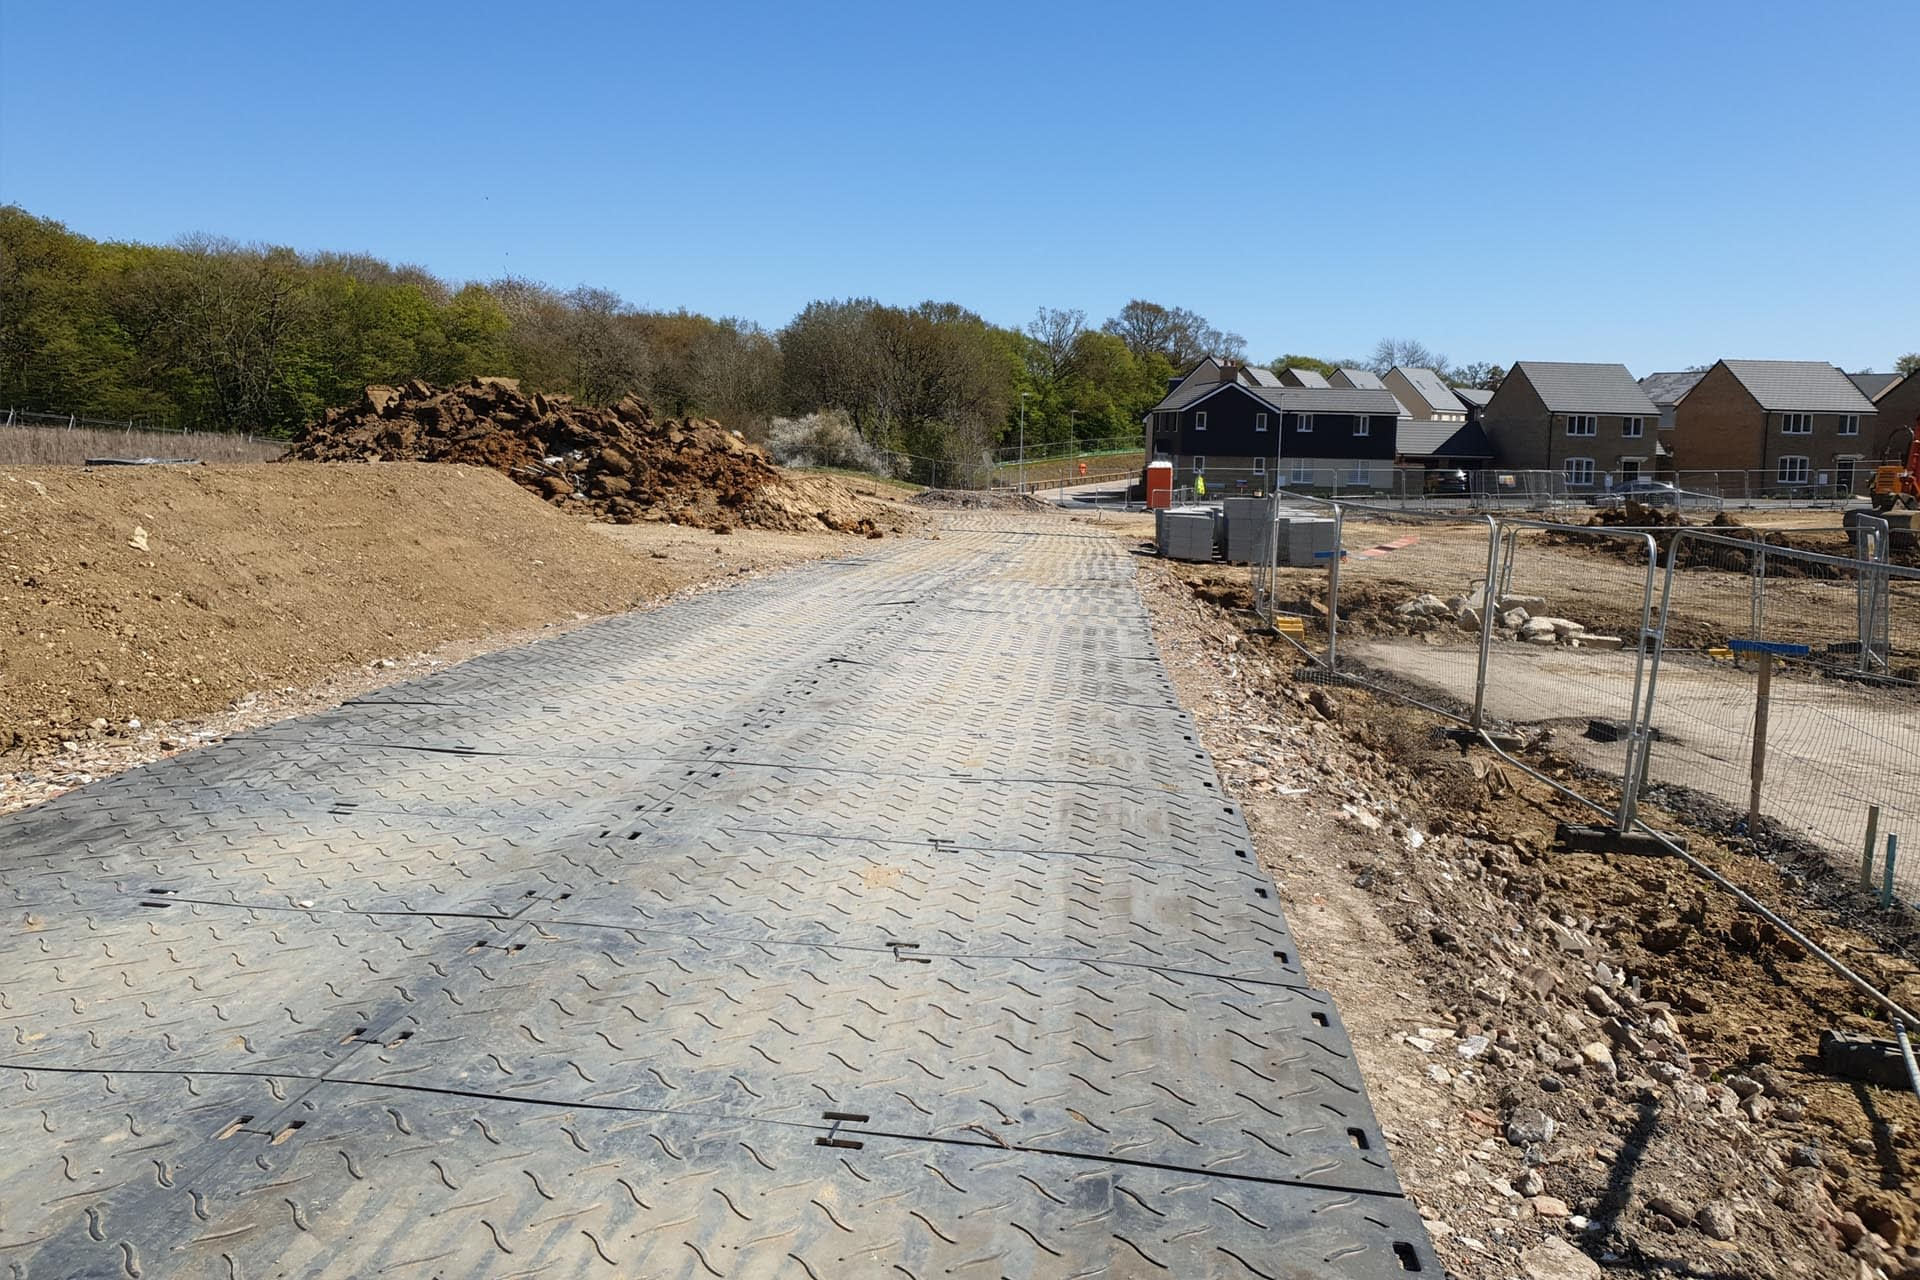 eurotrak-hd-access-mat-ground-protection-temporary-access-housing-development-project-spoilboard